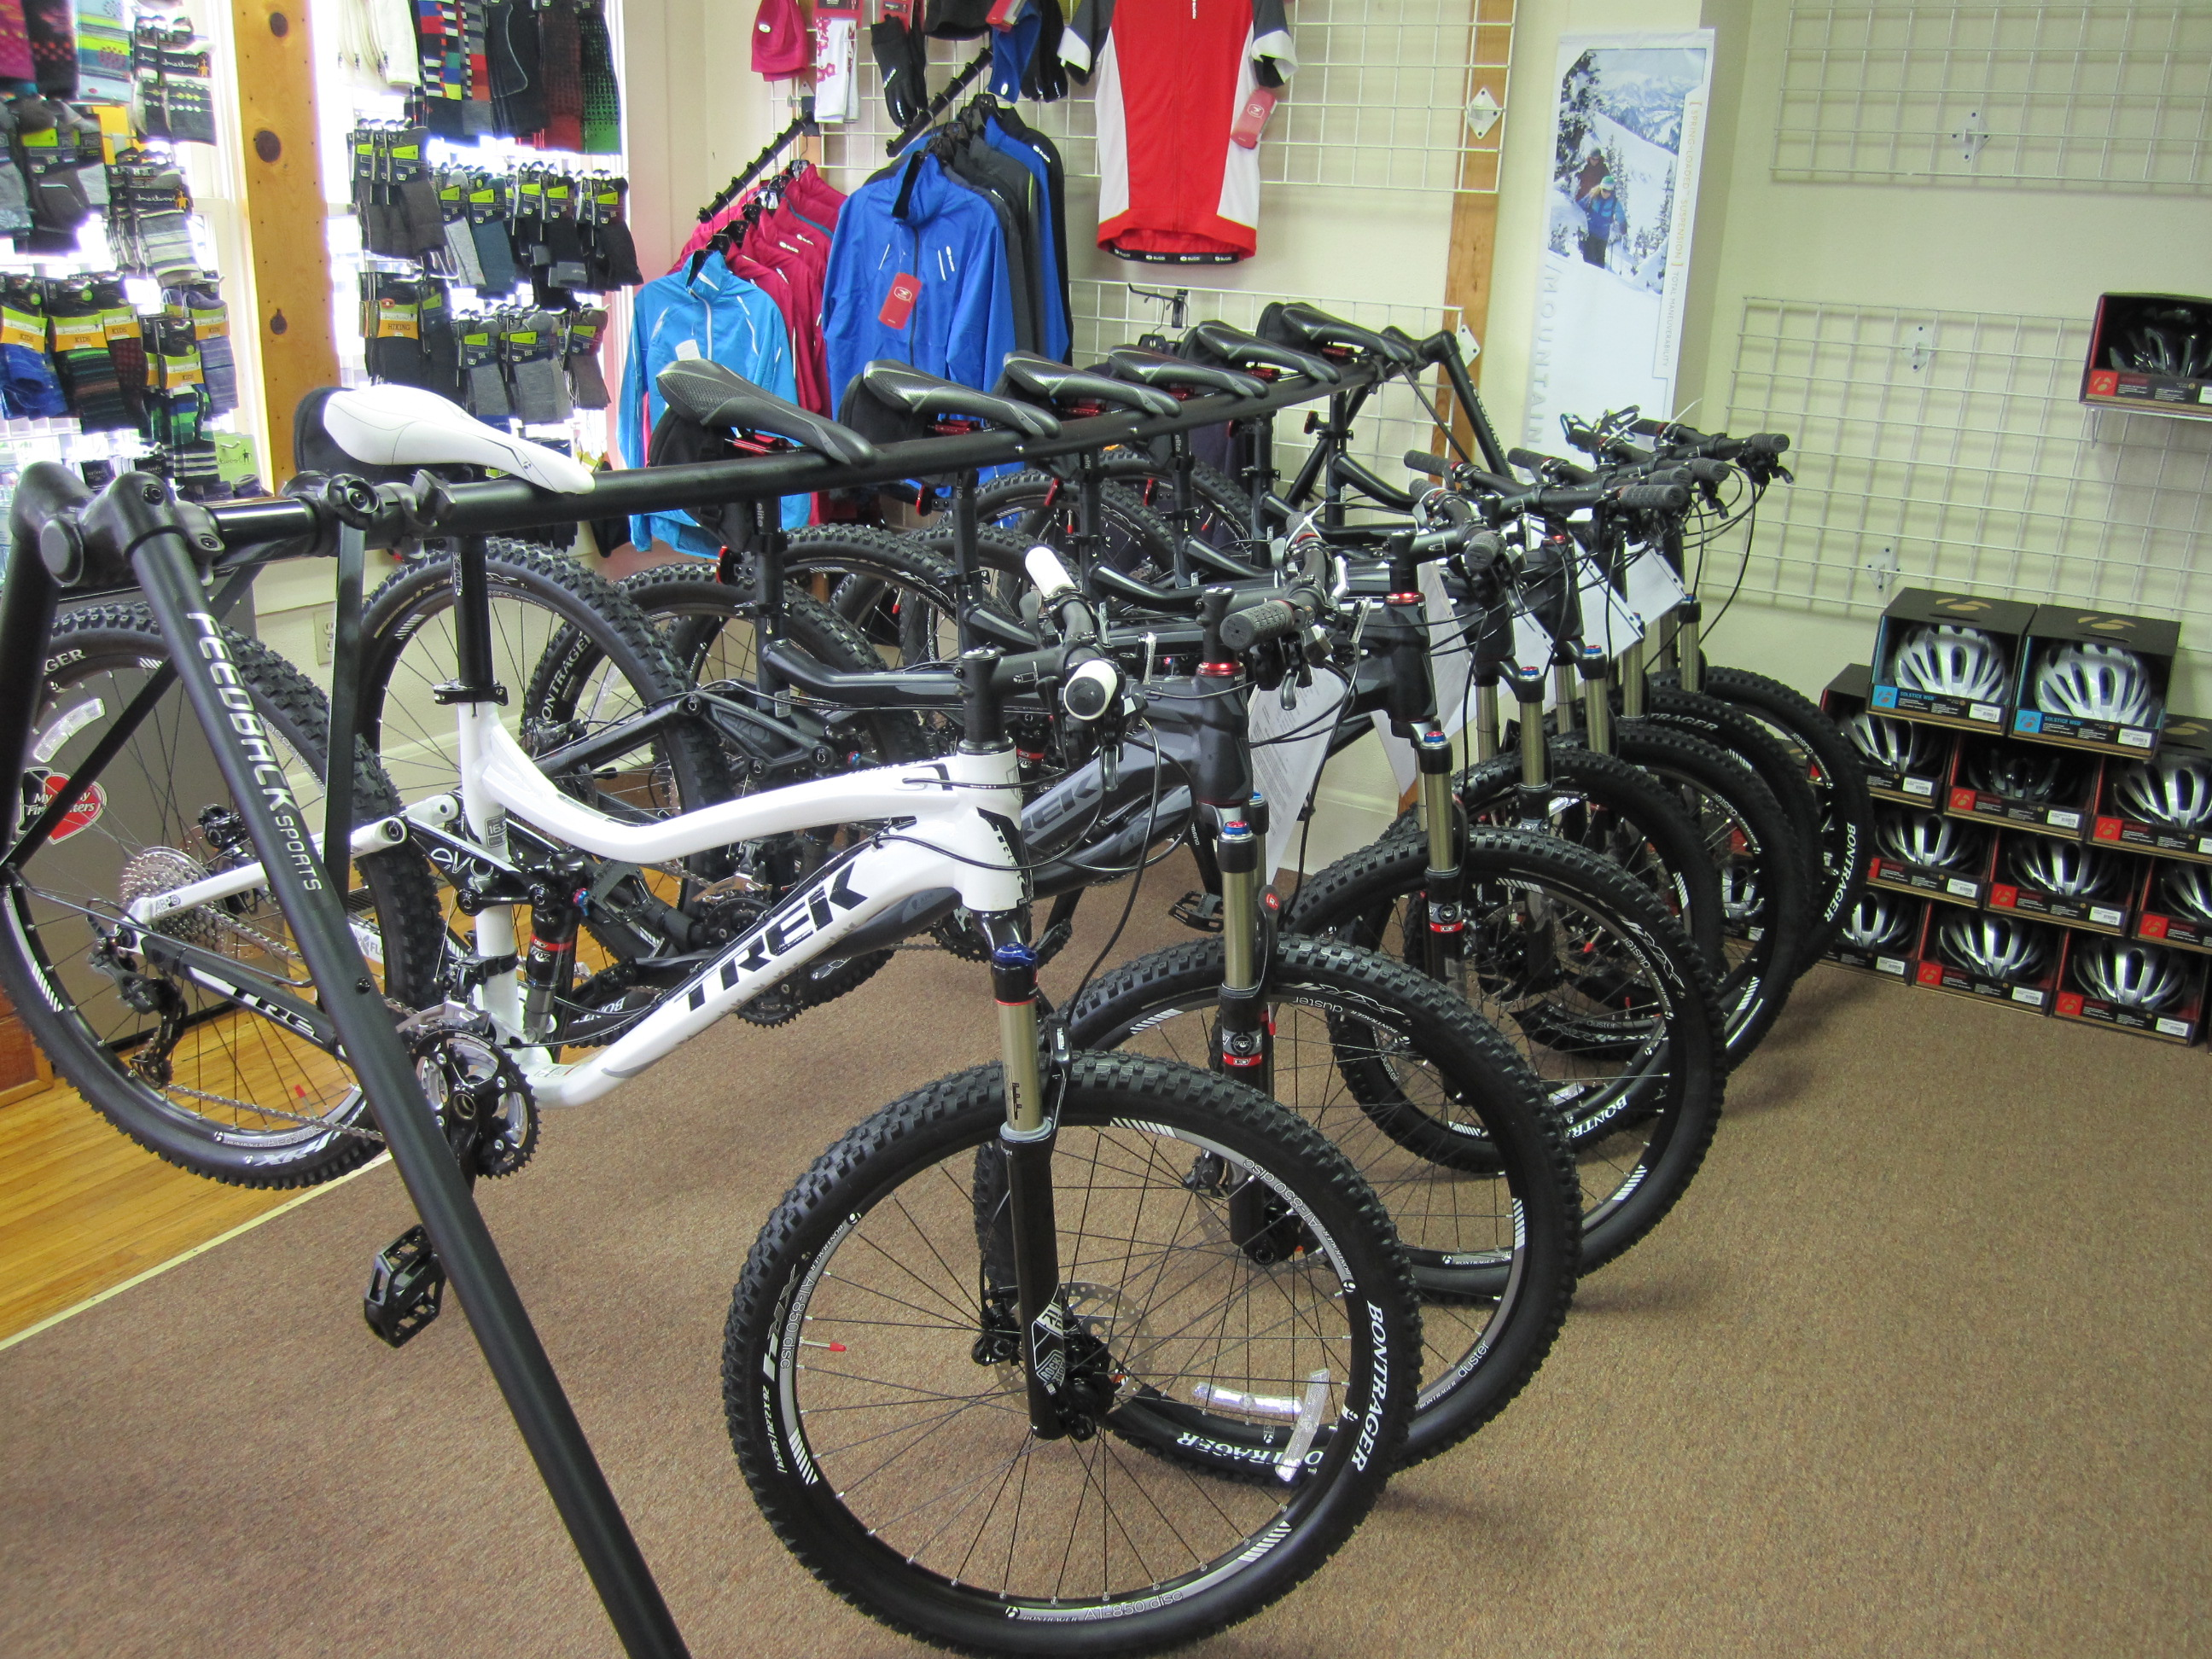 These are the full suspension bikes; Trek Fuel EX 8's and Lush S. We also have hardtails; Mambas and Marlins